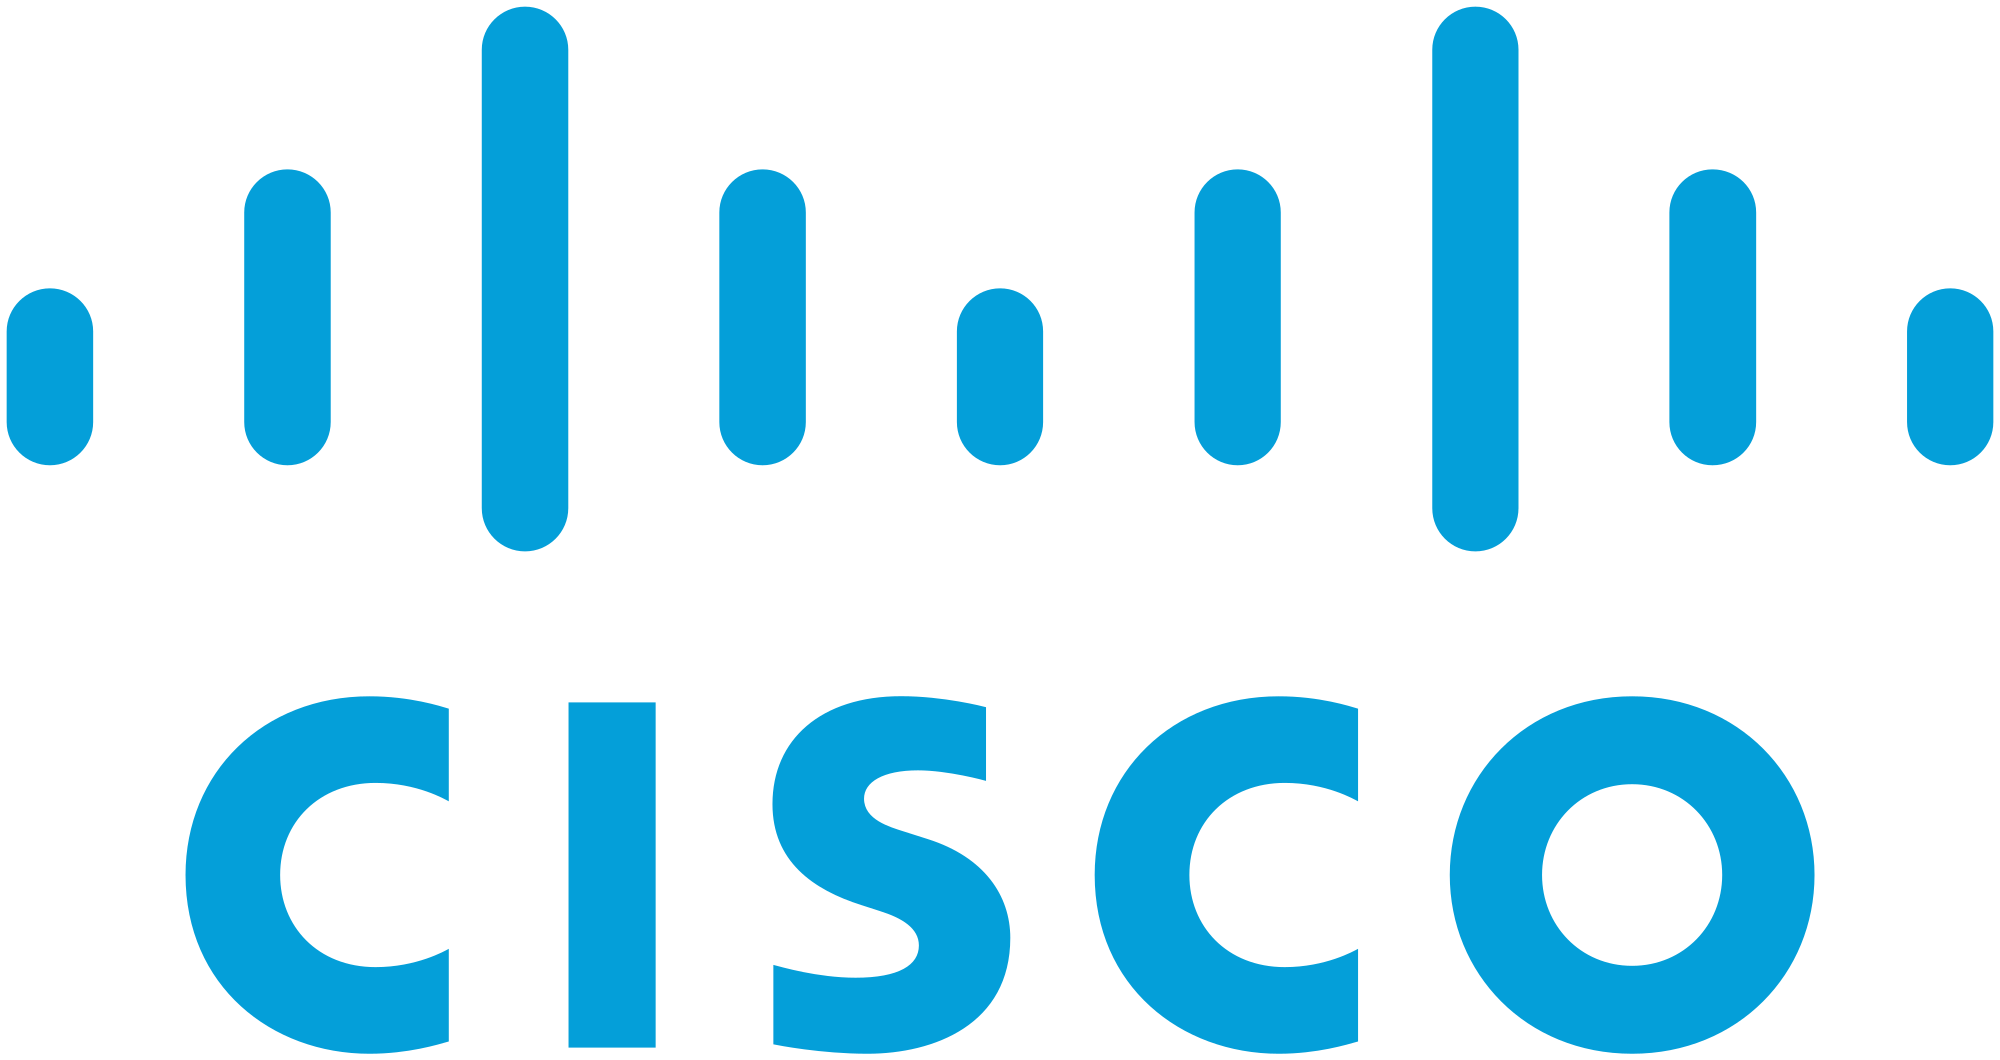 Cisco Firewall Series